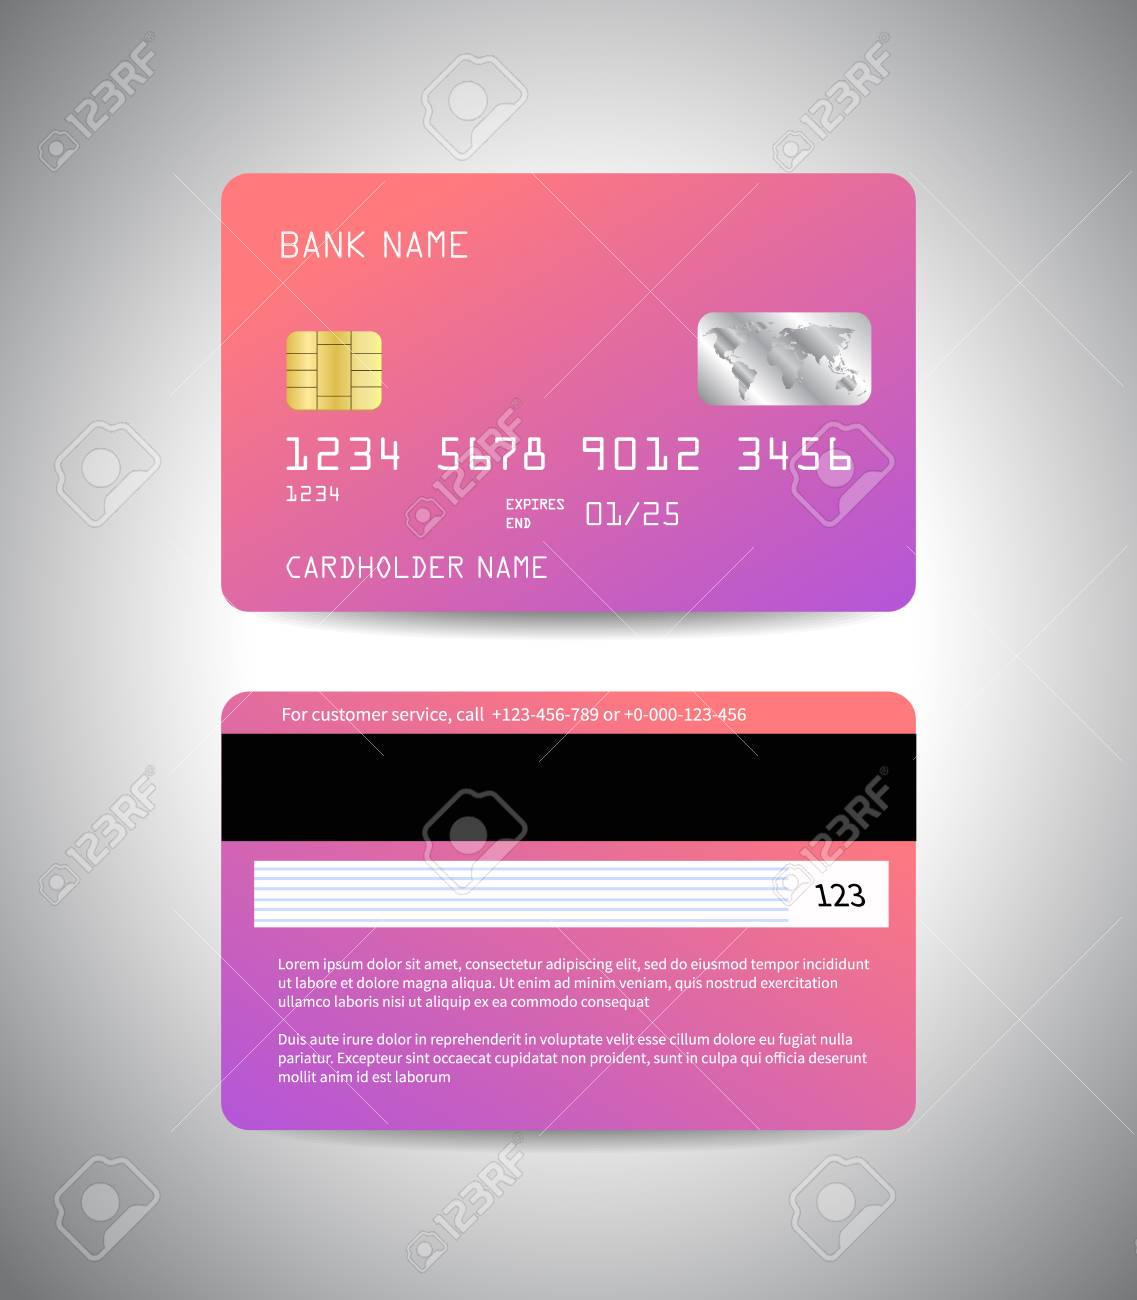 Realistic Detailed Credit Cards Set With Colorful Pink Gradient Abstract Background Design Front And Back